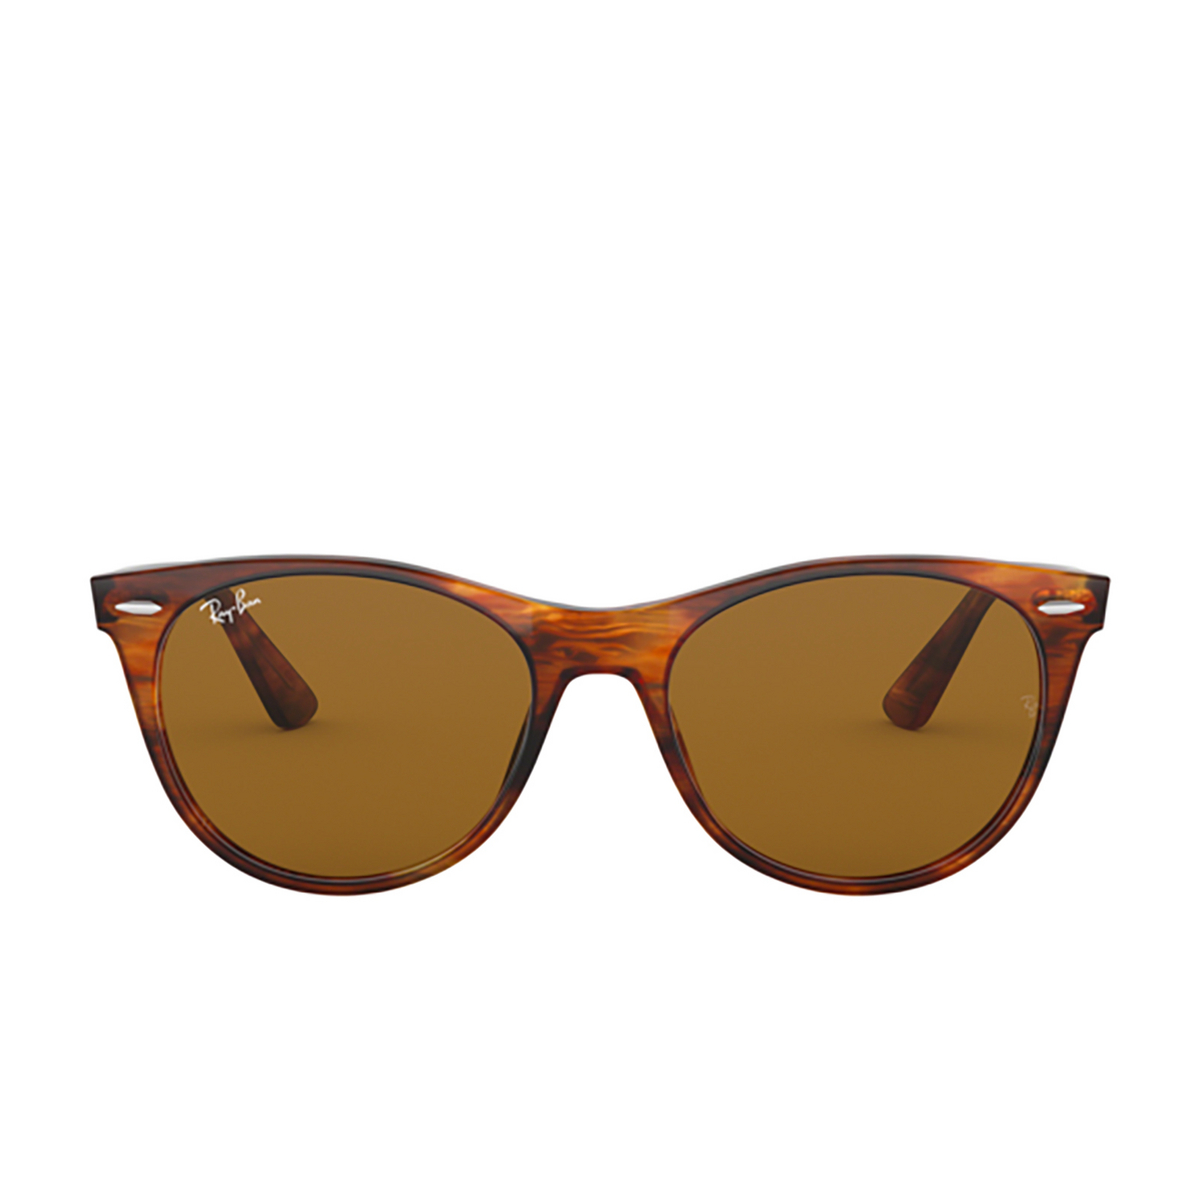 Ray-Ban® Square Sunglasses: Wayfarer Ii RB2185 color Striped Havana 954/33 - front view.